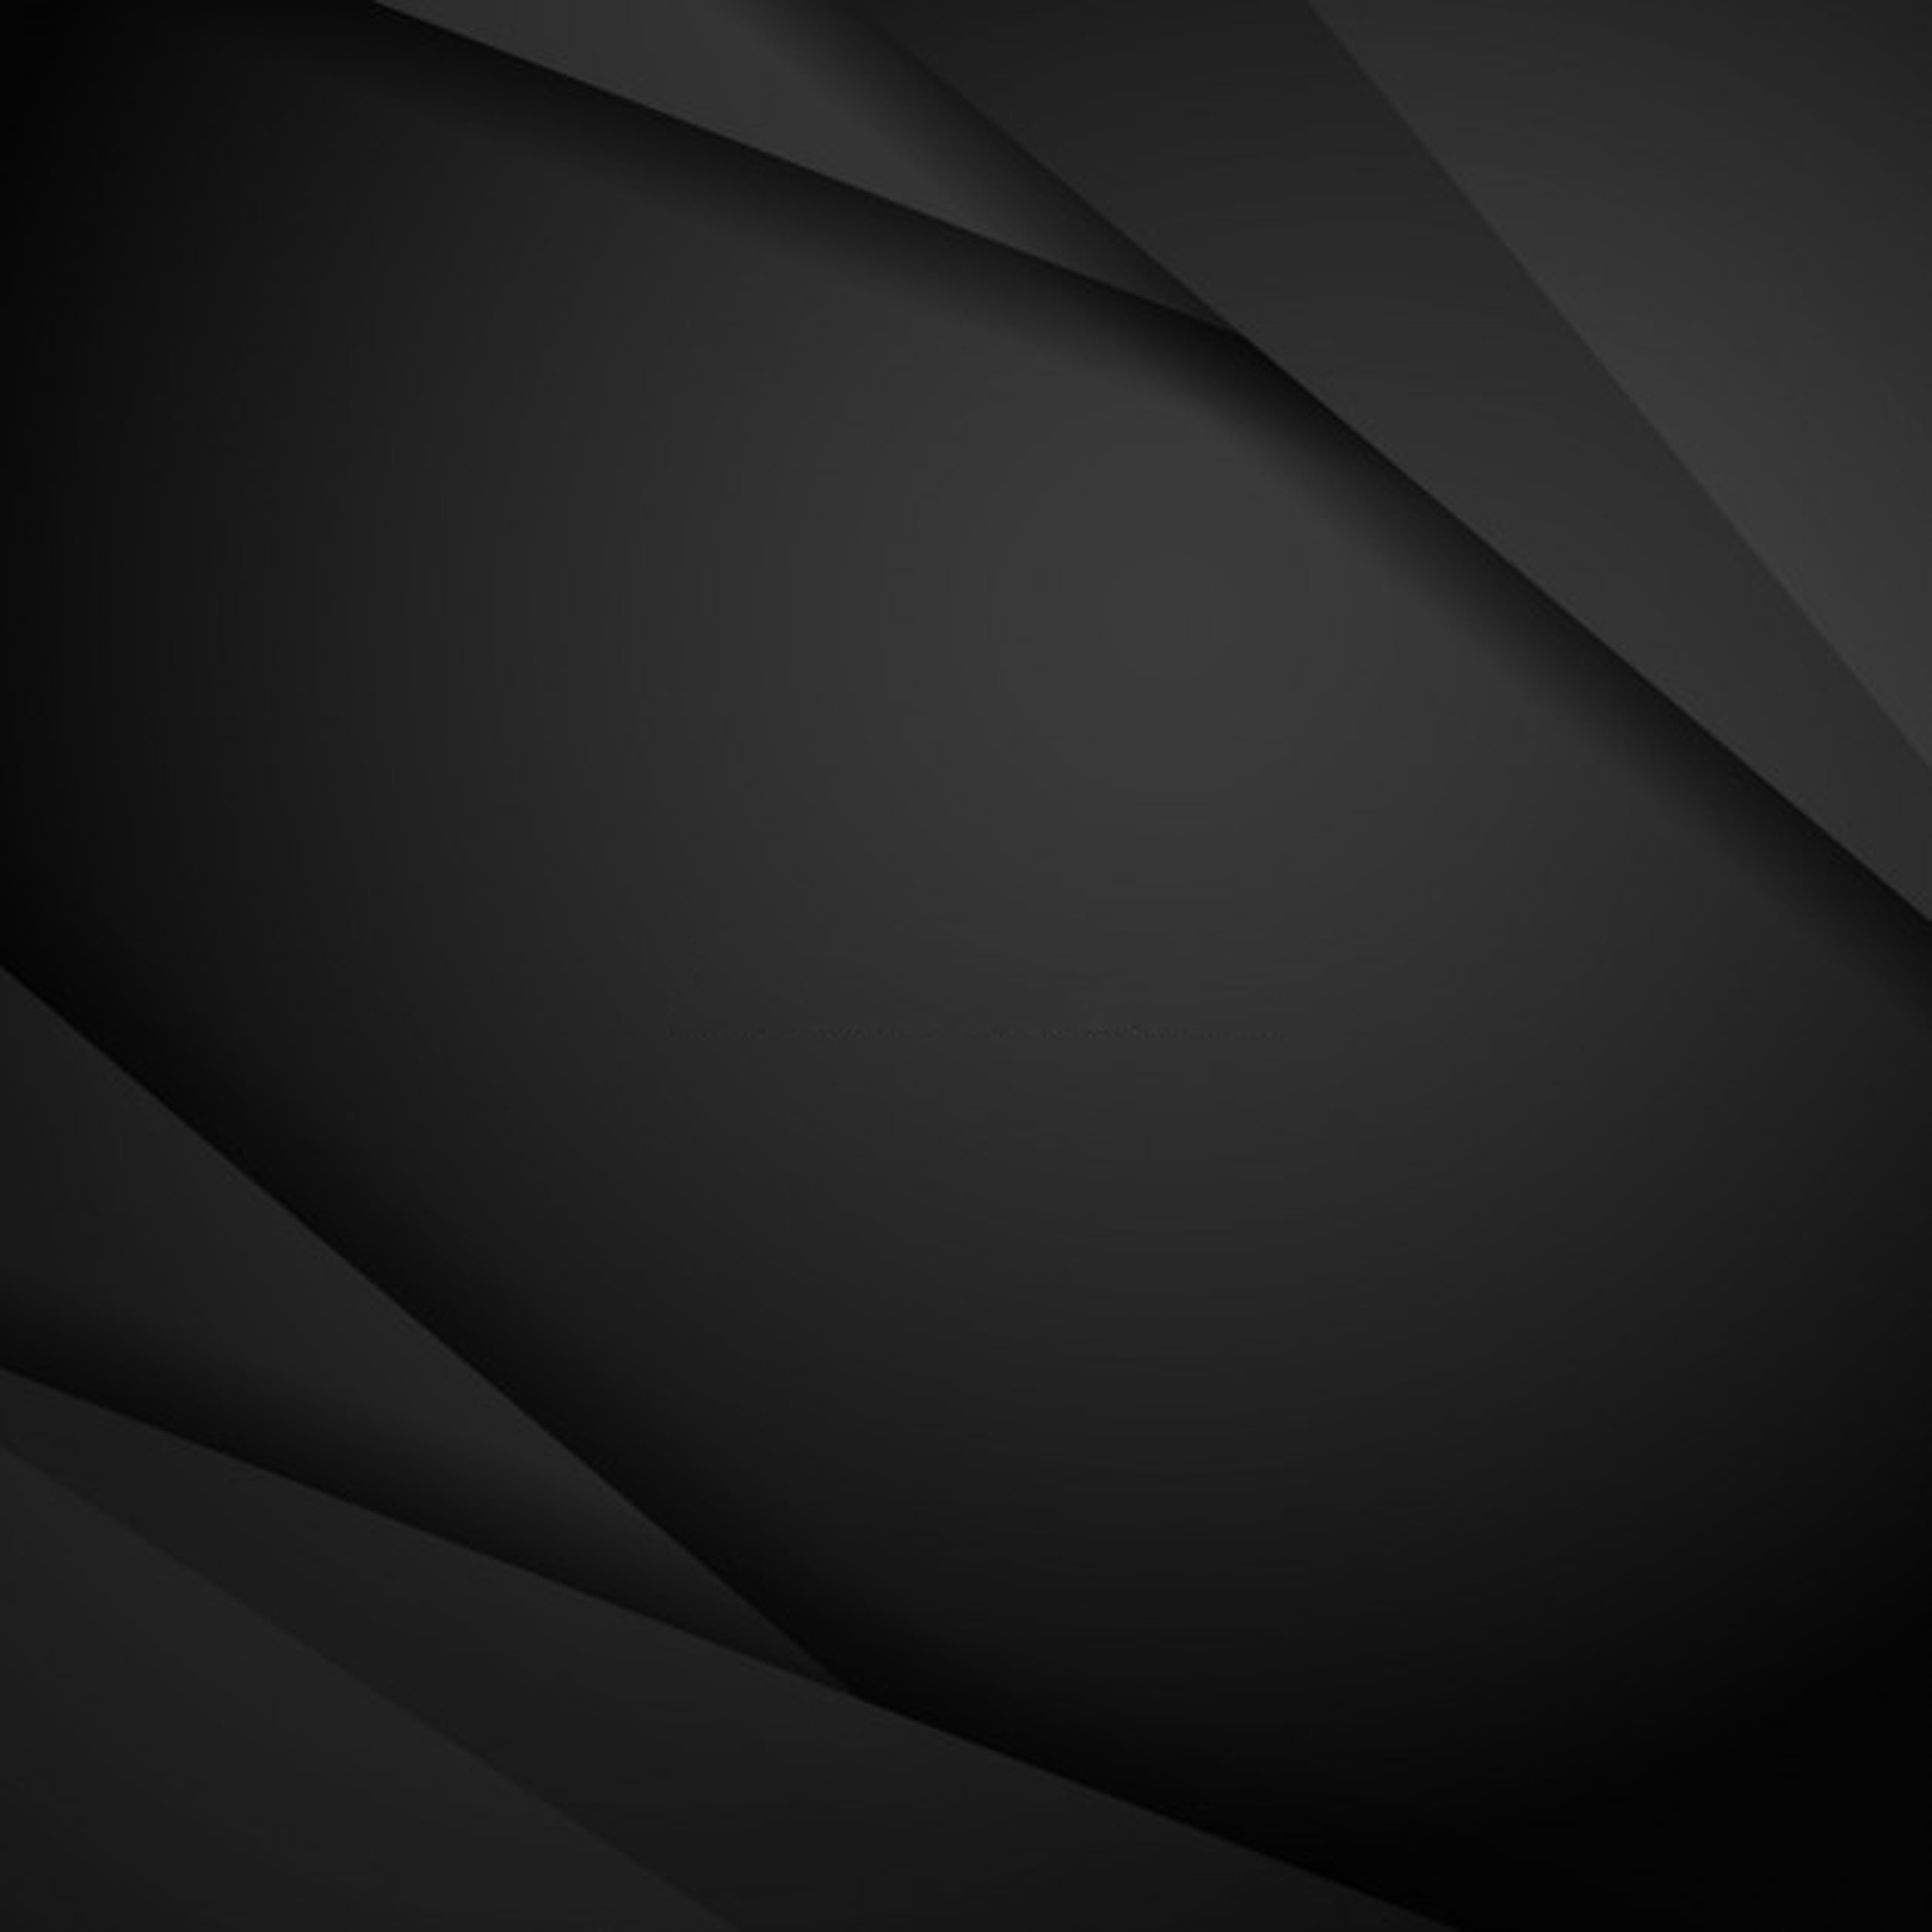 Black Wallpaper Hd 4k Background Gradient Dark Shine